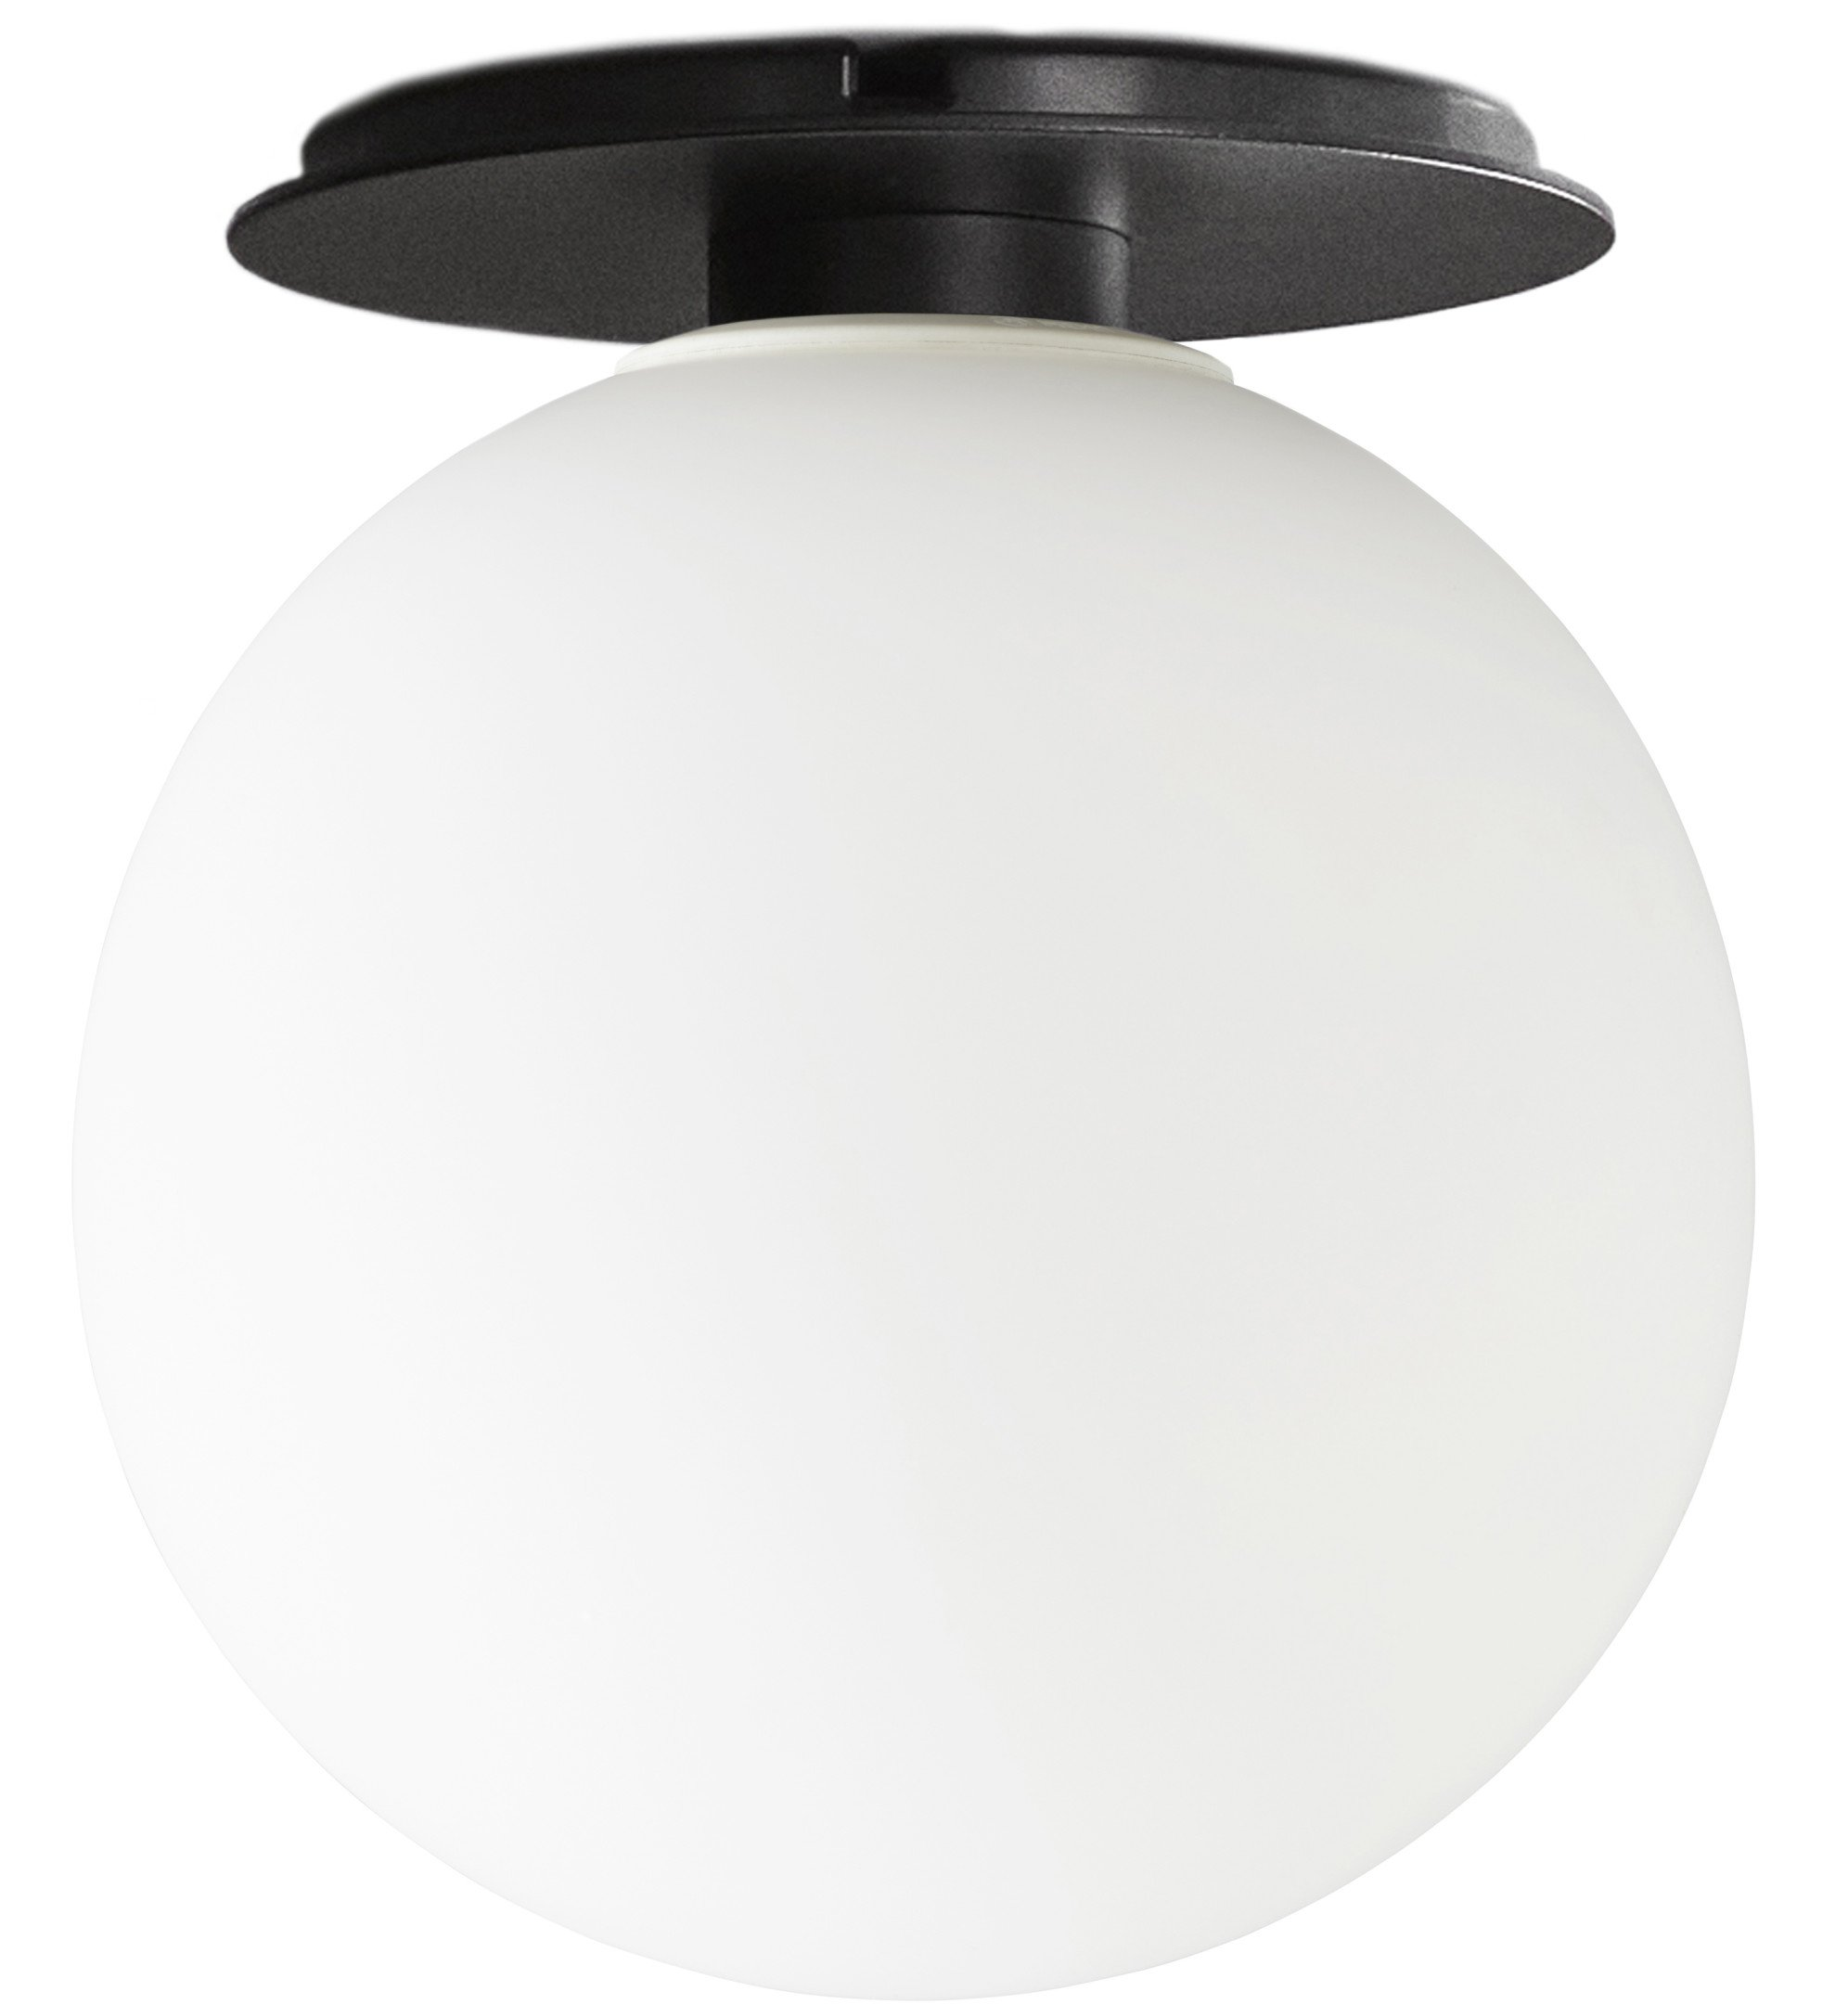 TR Bulb, Ceiling/Wall Lamp Black/Matte Opal by Tim Rundle for Menu